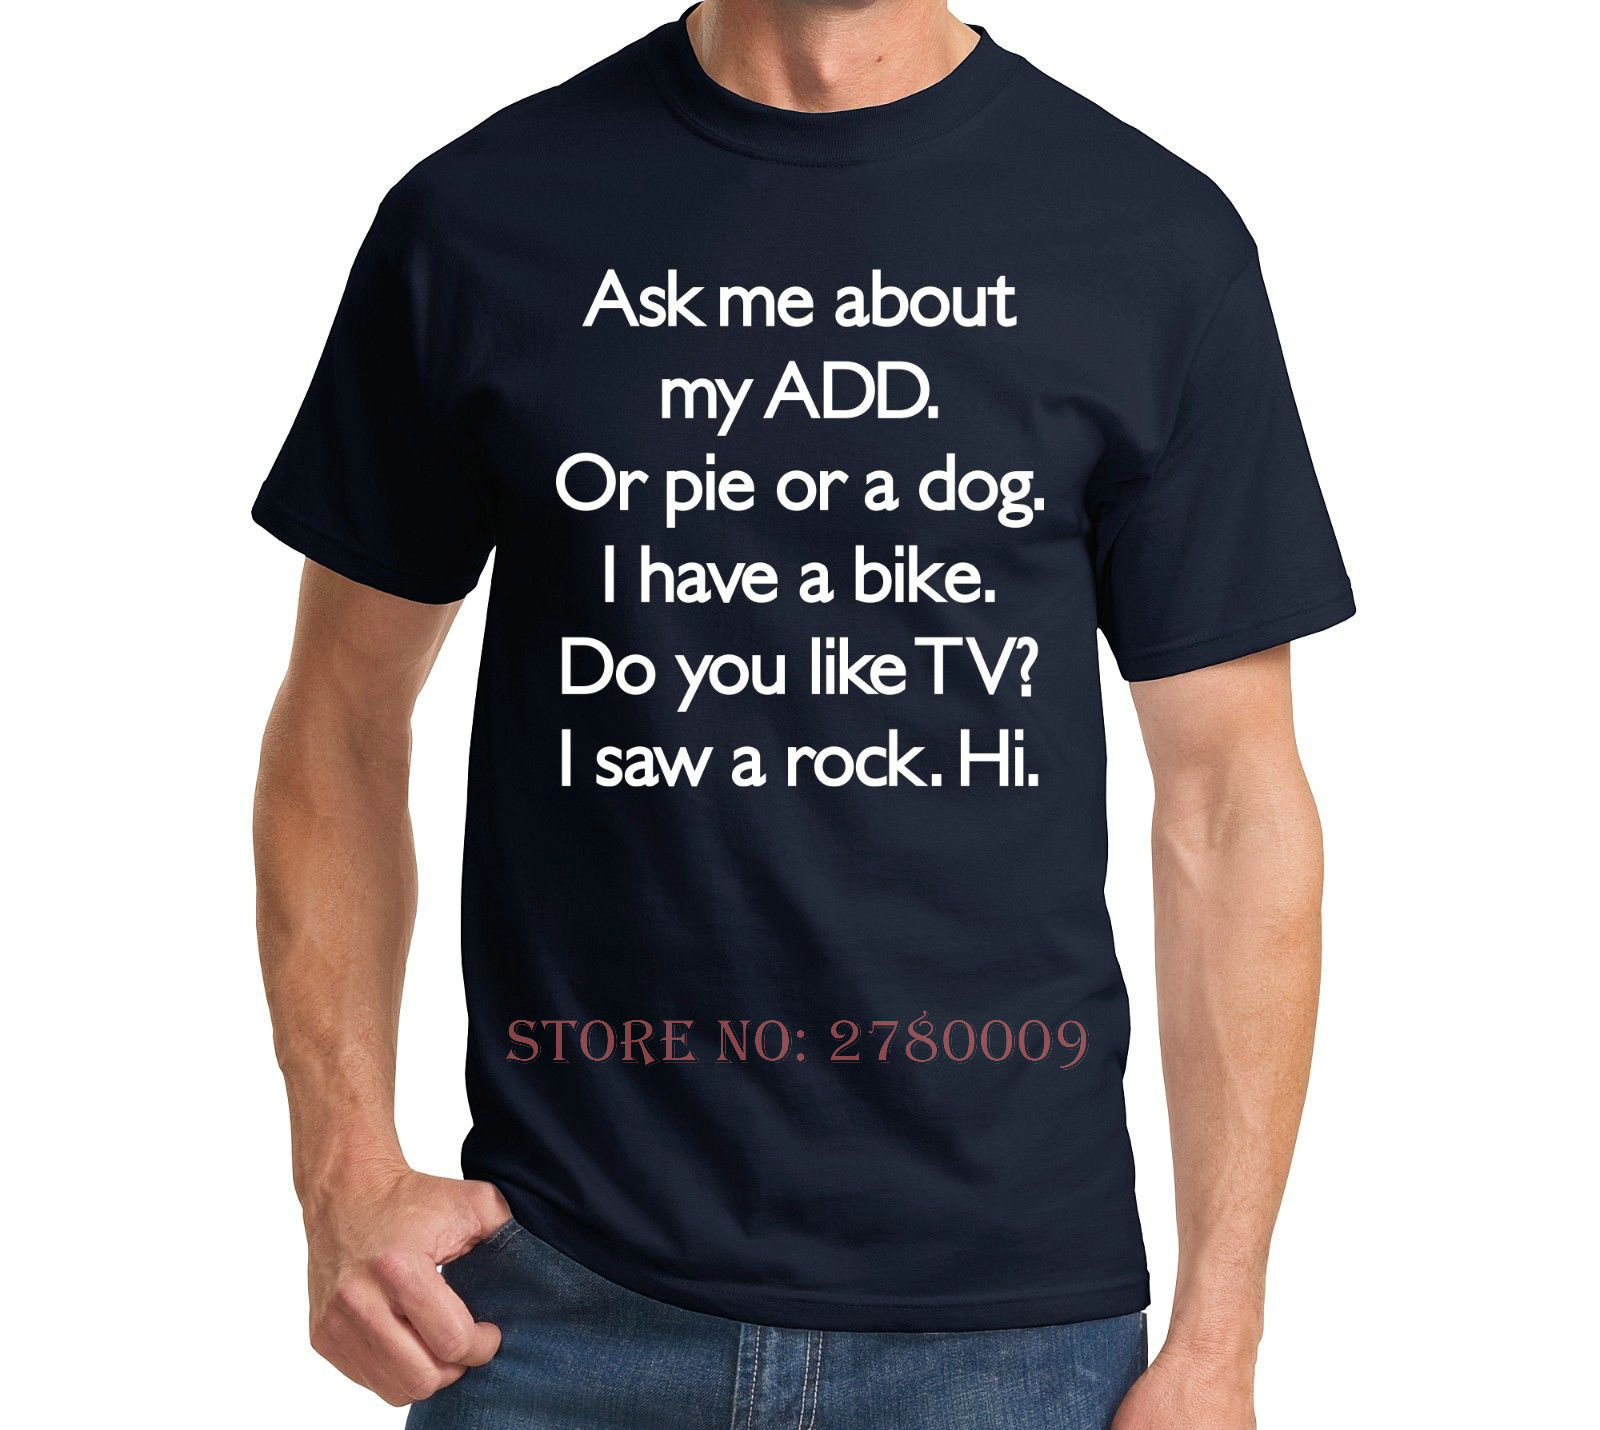 Ask Me About My ADD Or Dog Funny T Shirt ADHD Cute Holiday Gift ...